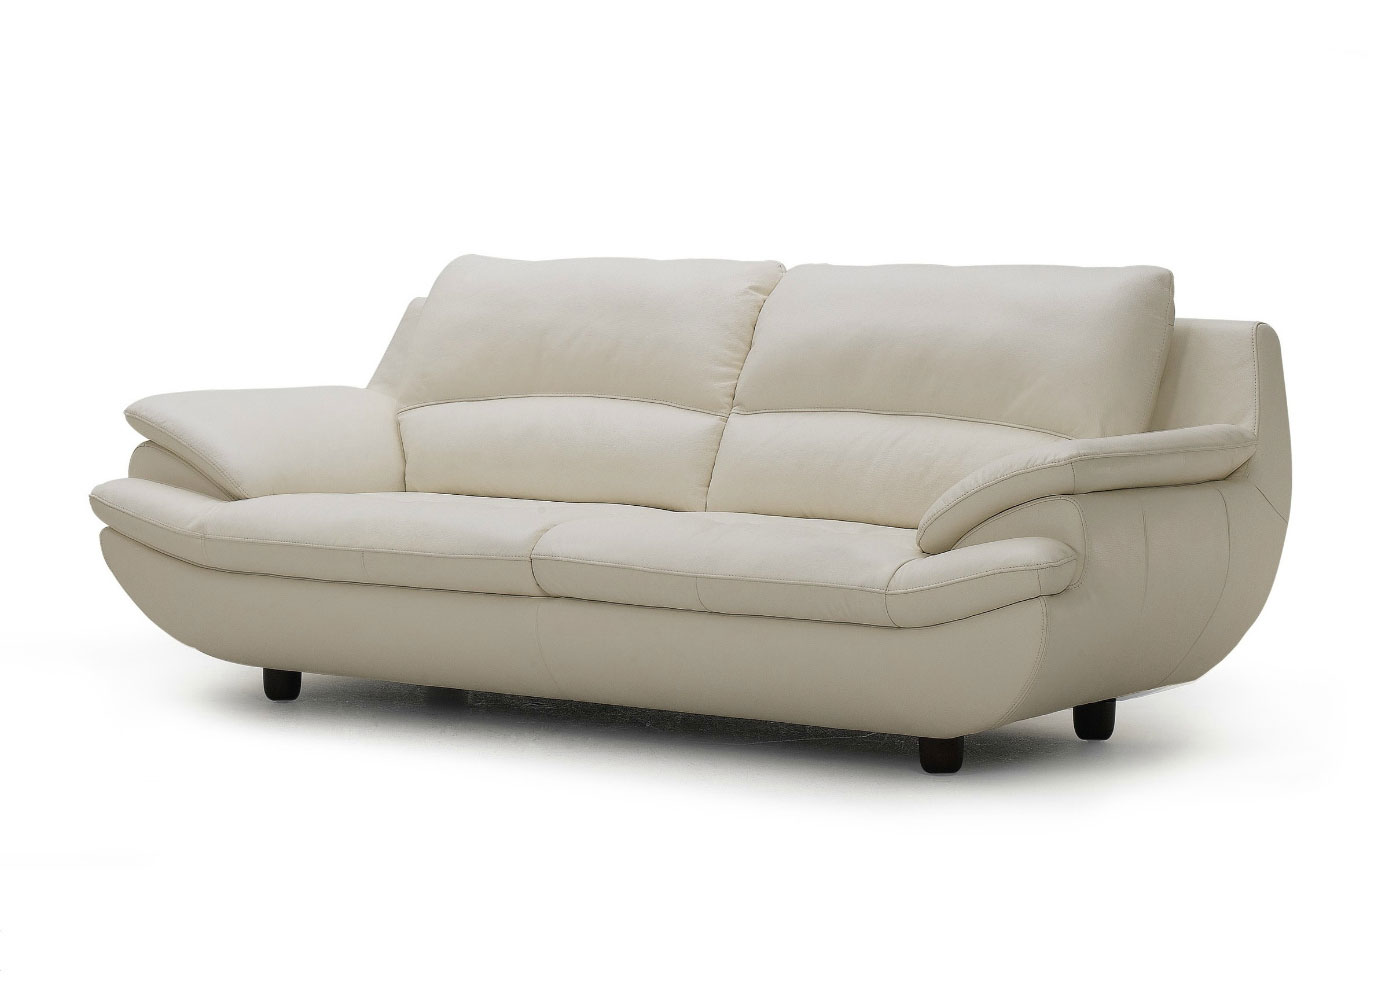 Plush Leather Sofa In Off White Not Just Brown